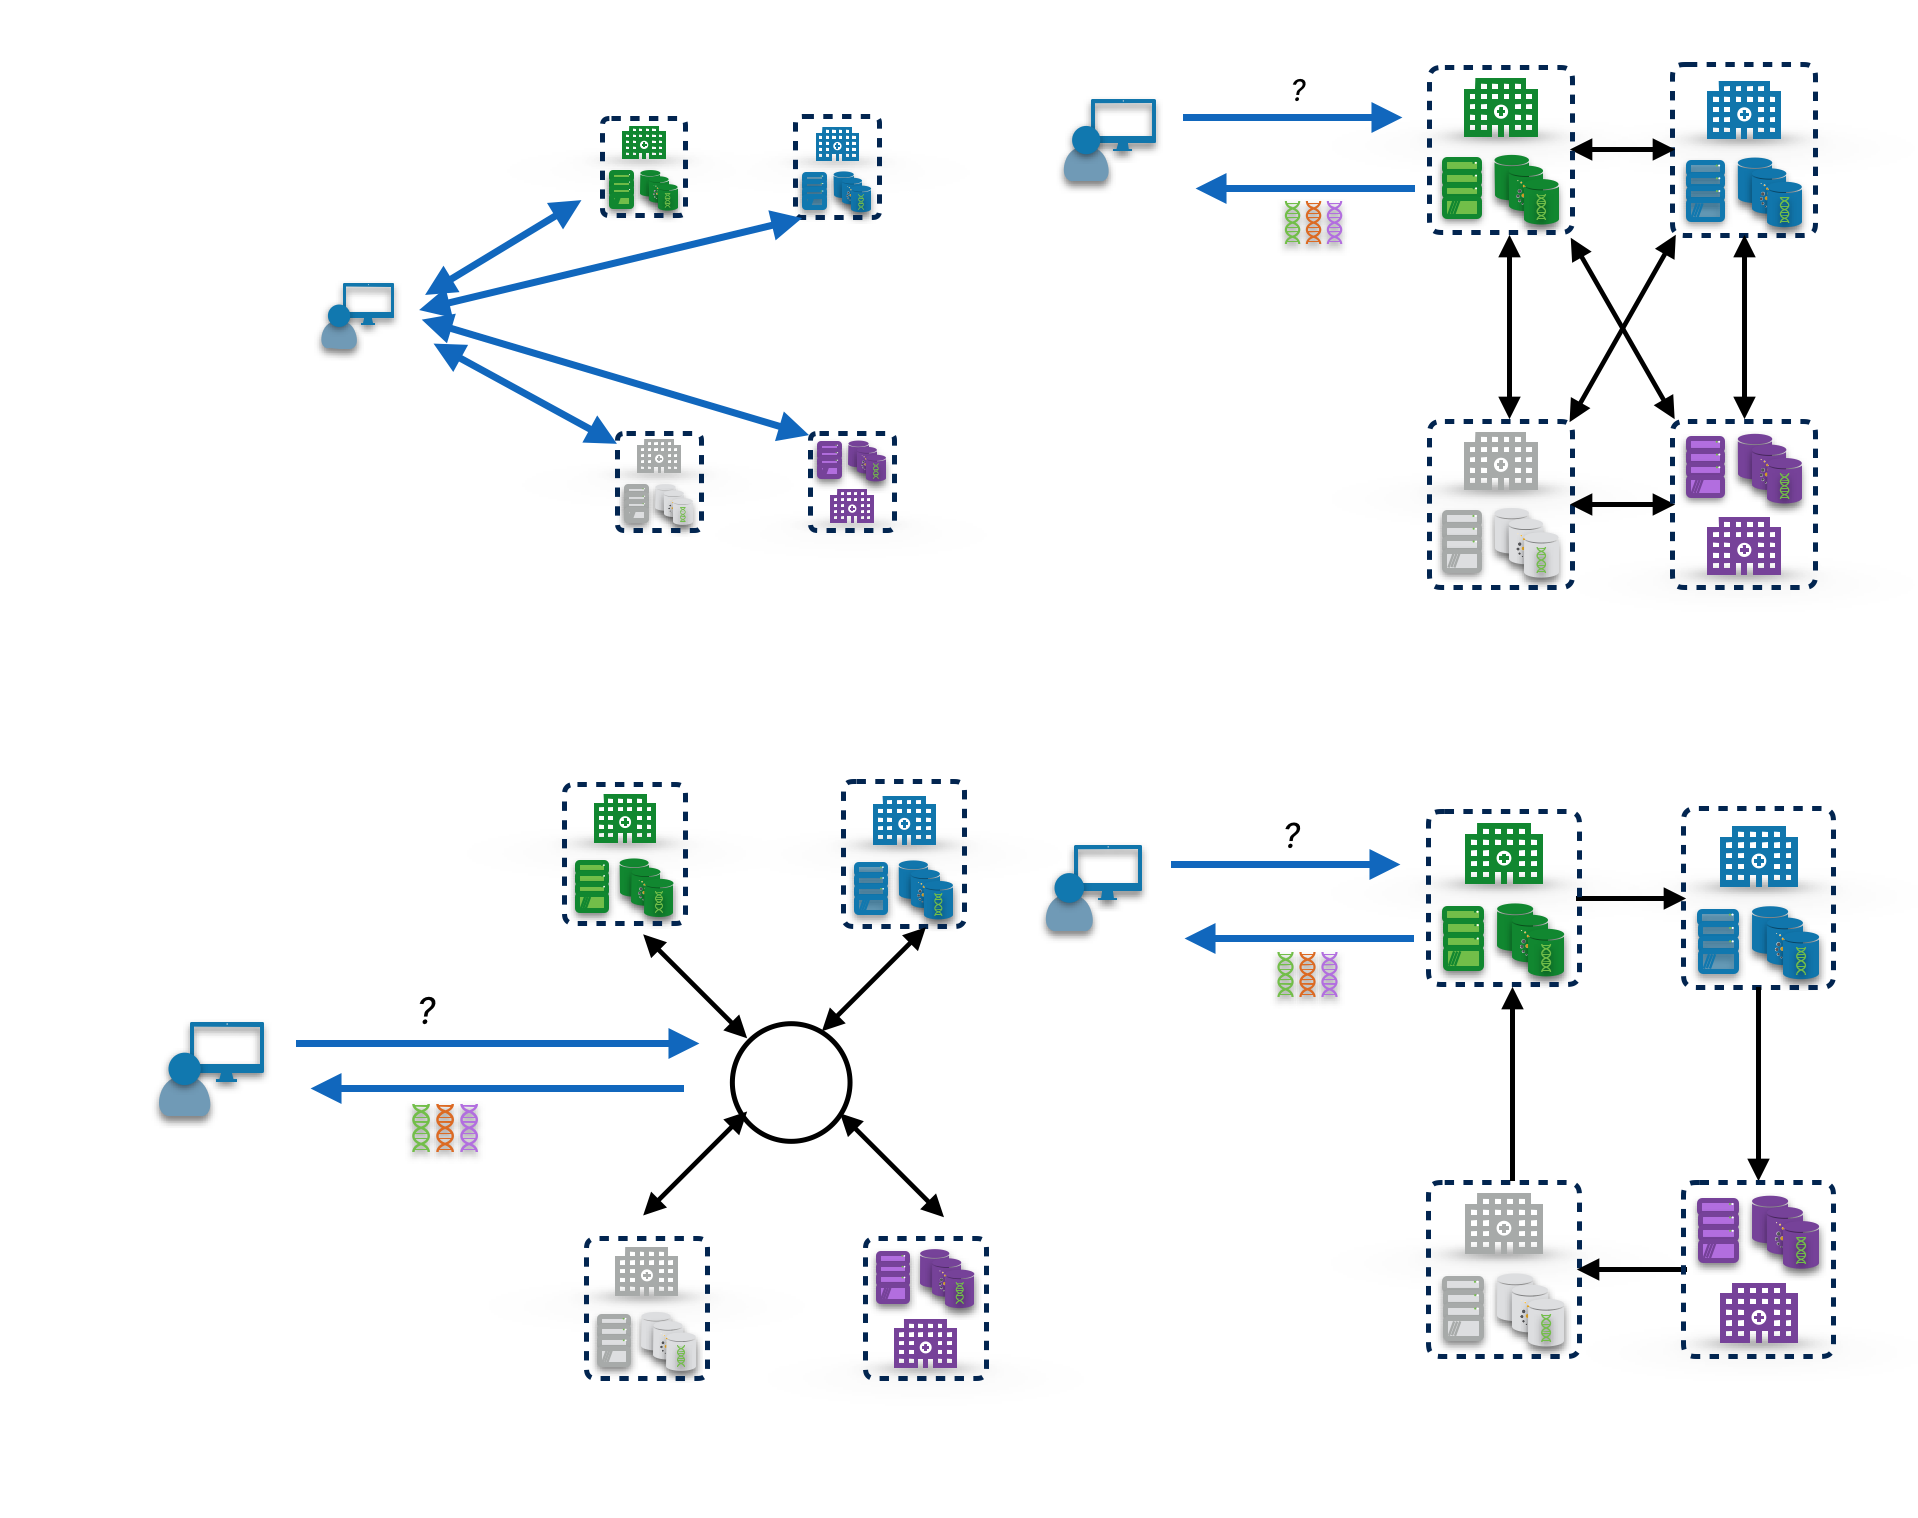 Diagram showing multiple geometries of query flow through the federated system.